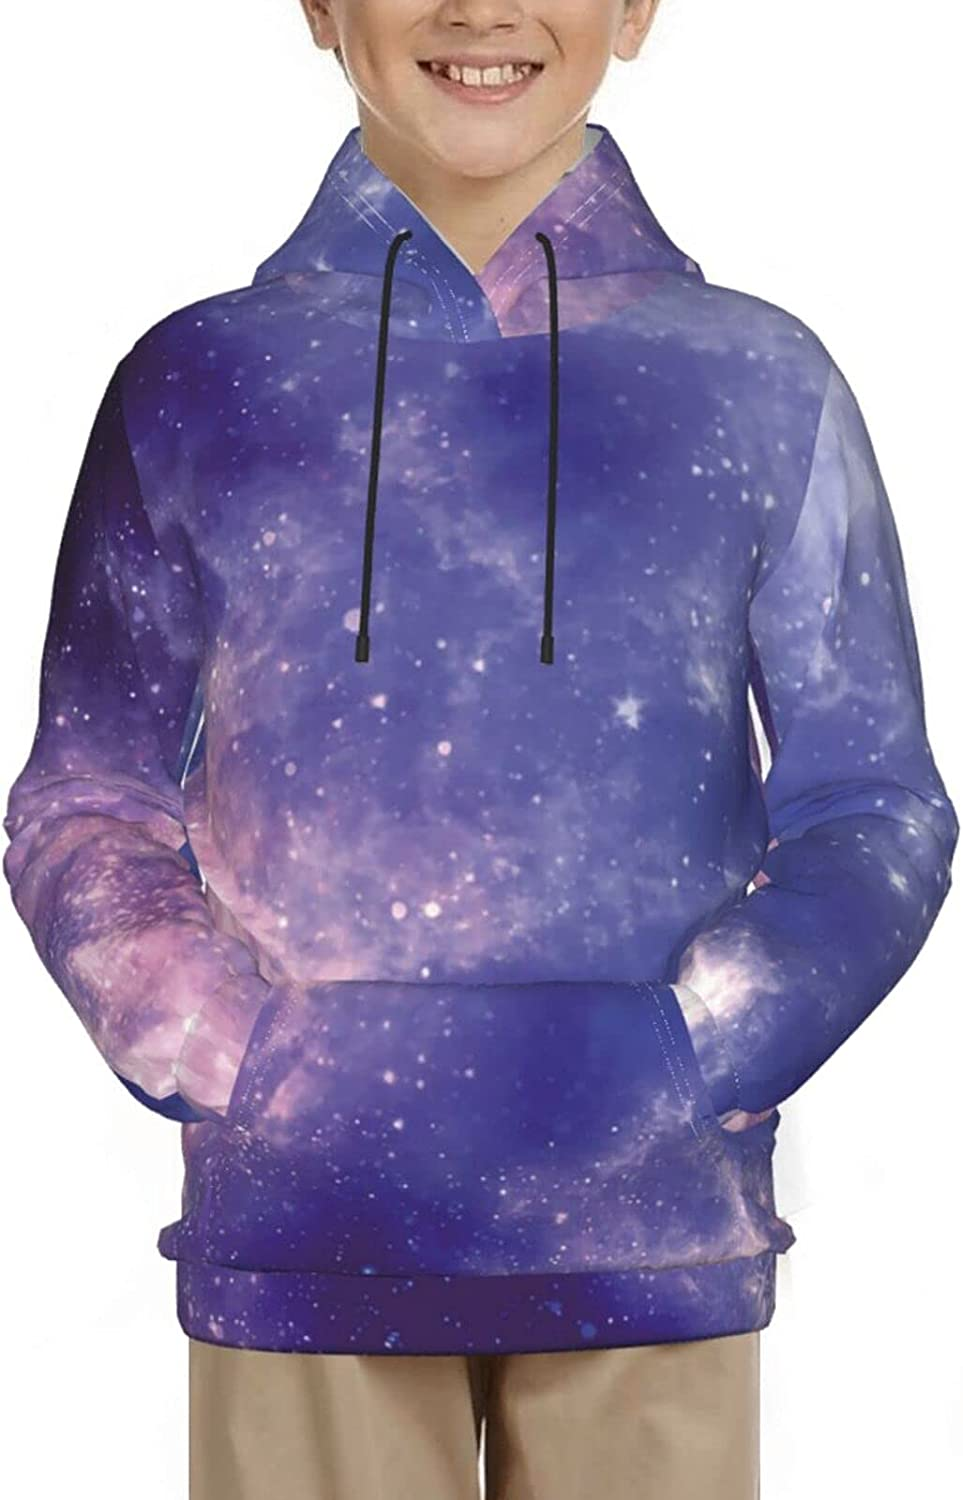 Galaxy Hoodies, Fashion 3D Print Sweatshirts, with Pocket Long Sleeves Pullover, for Boys Girls